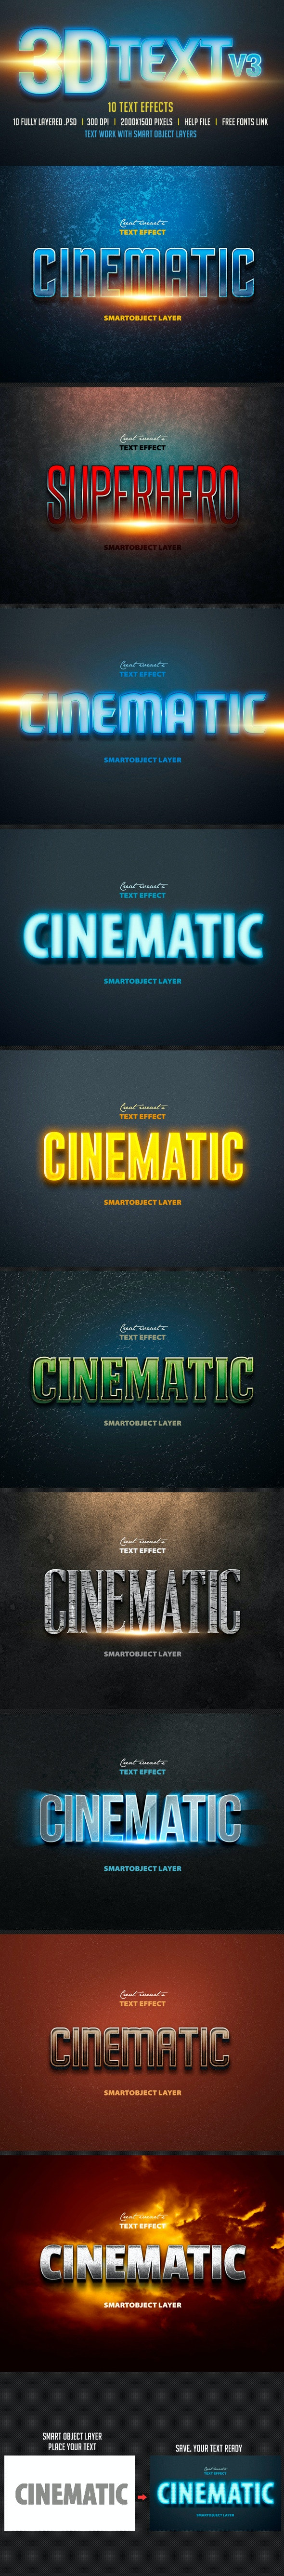 3D Text Col 3 - Text Effects Actions